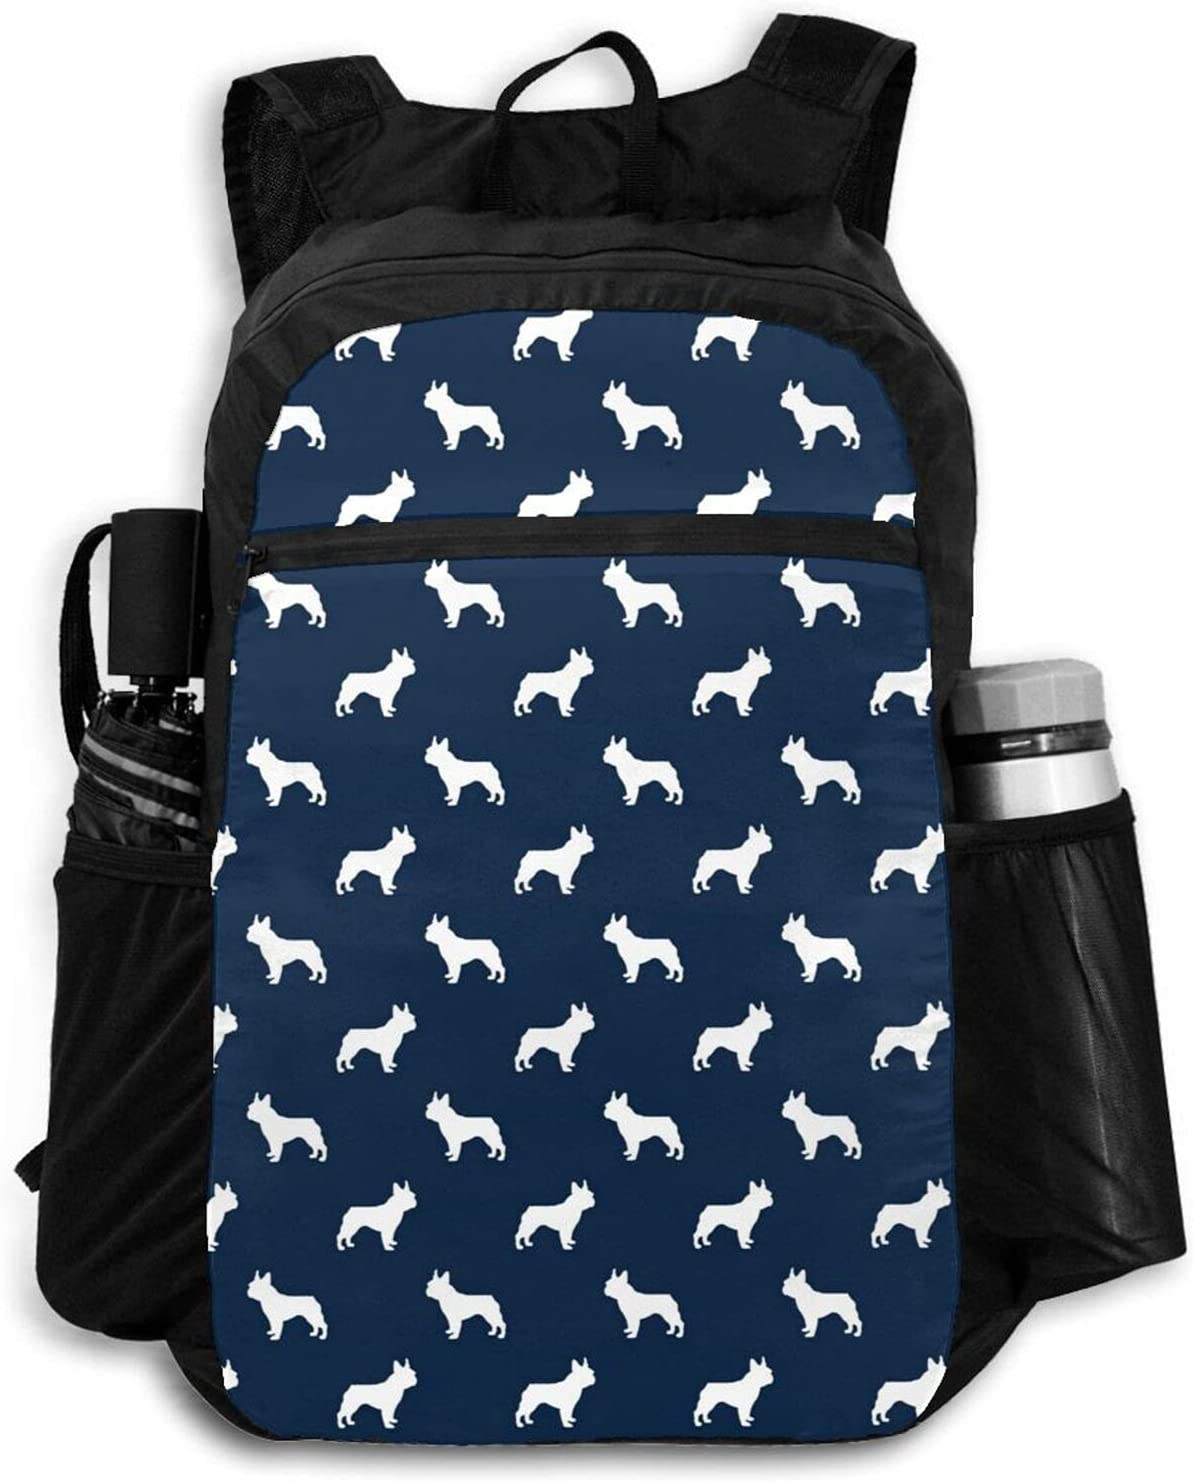 Zolama Boston Terrier Dog Silhouette discount Blue for Navy Backpacks Max 71% OFF Wom